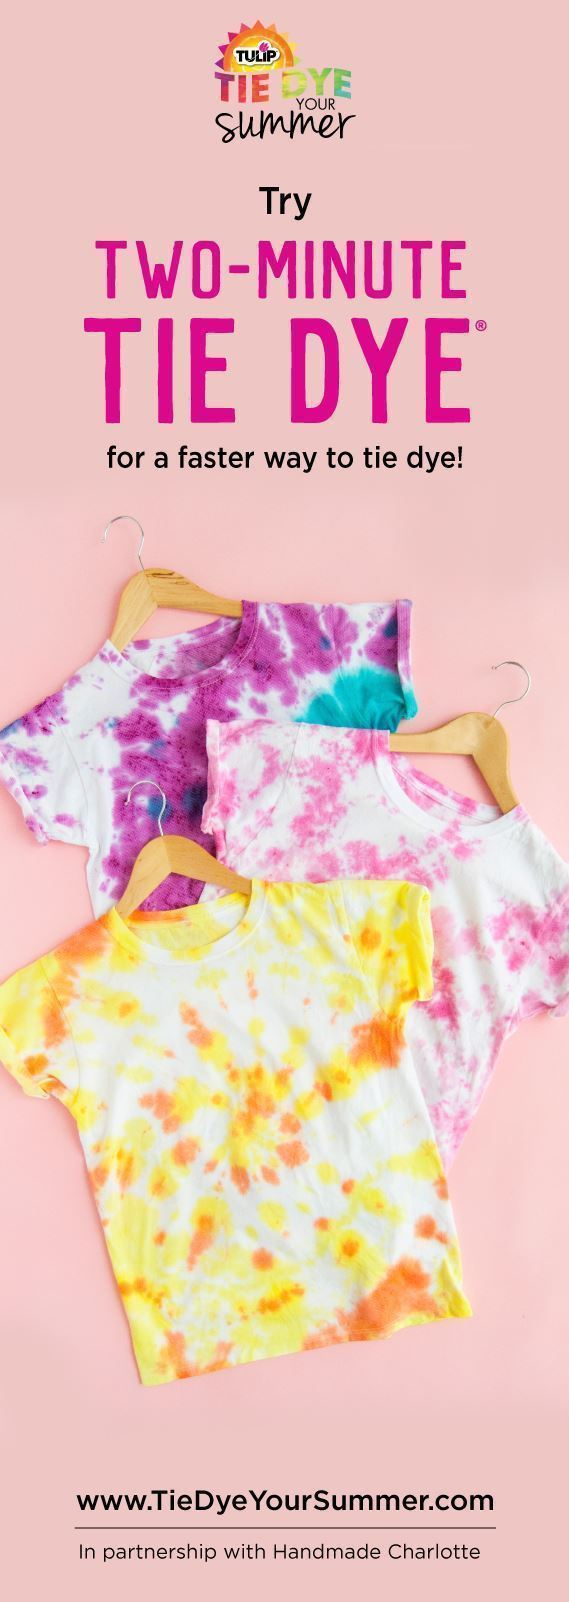 How To Two-Minute Tie-Dye